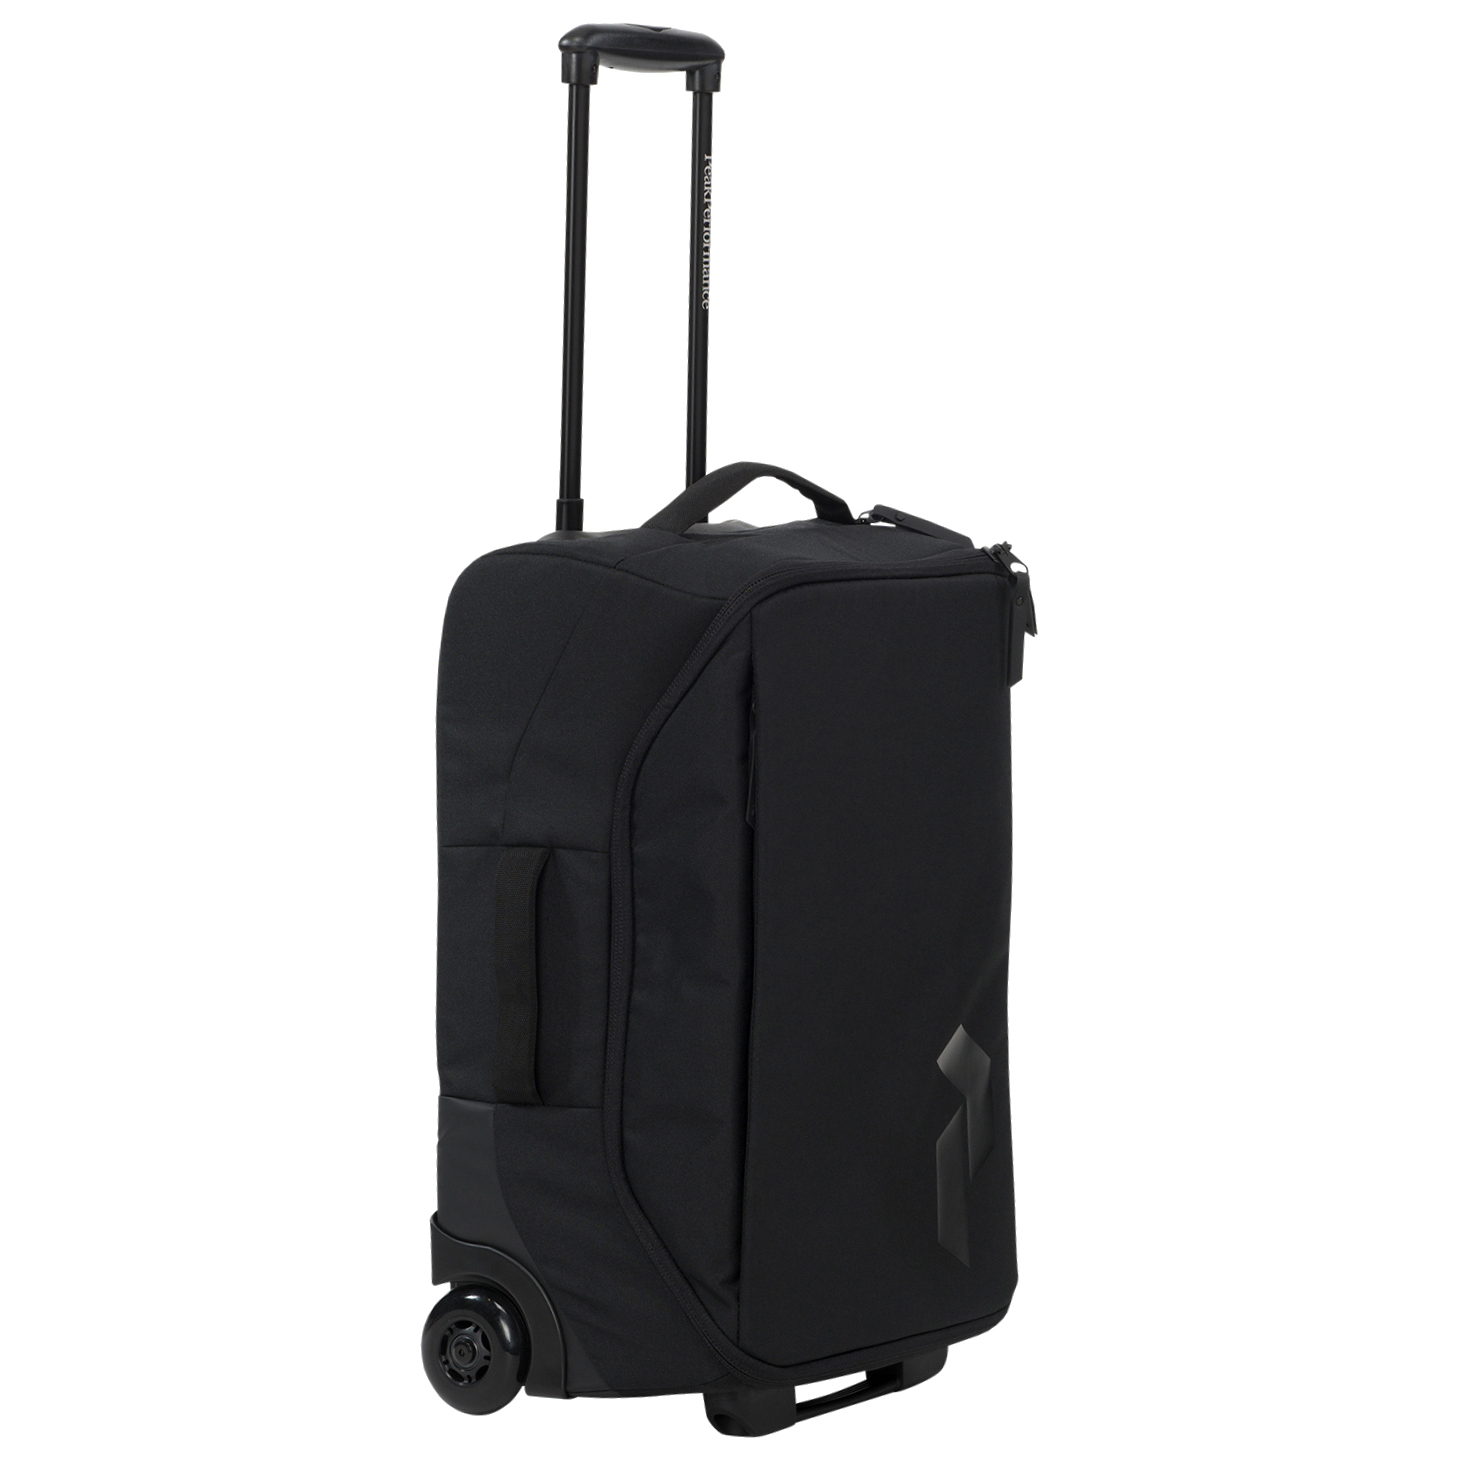 On-board bags and cabin trolleys are compact and practical